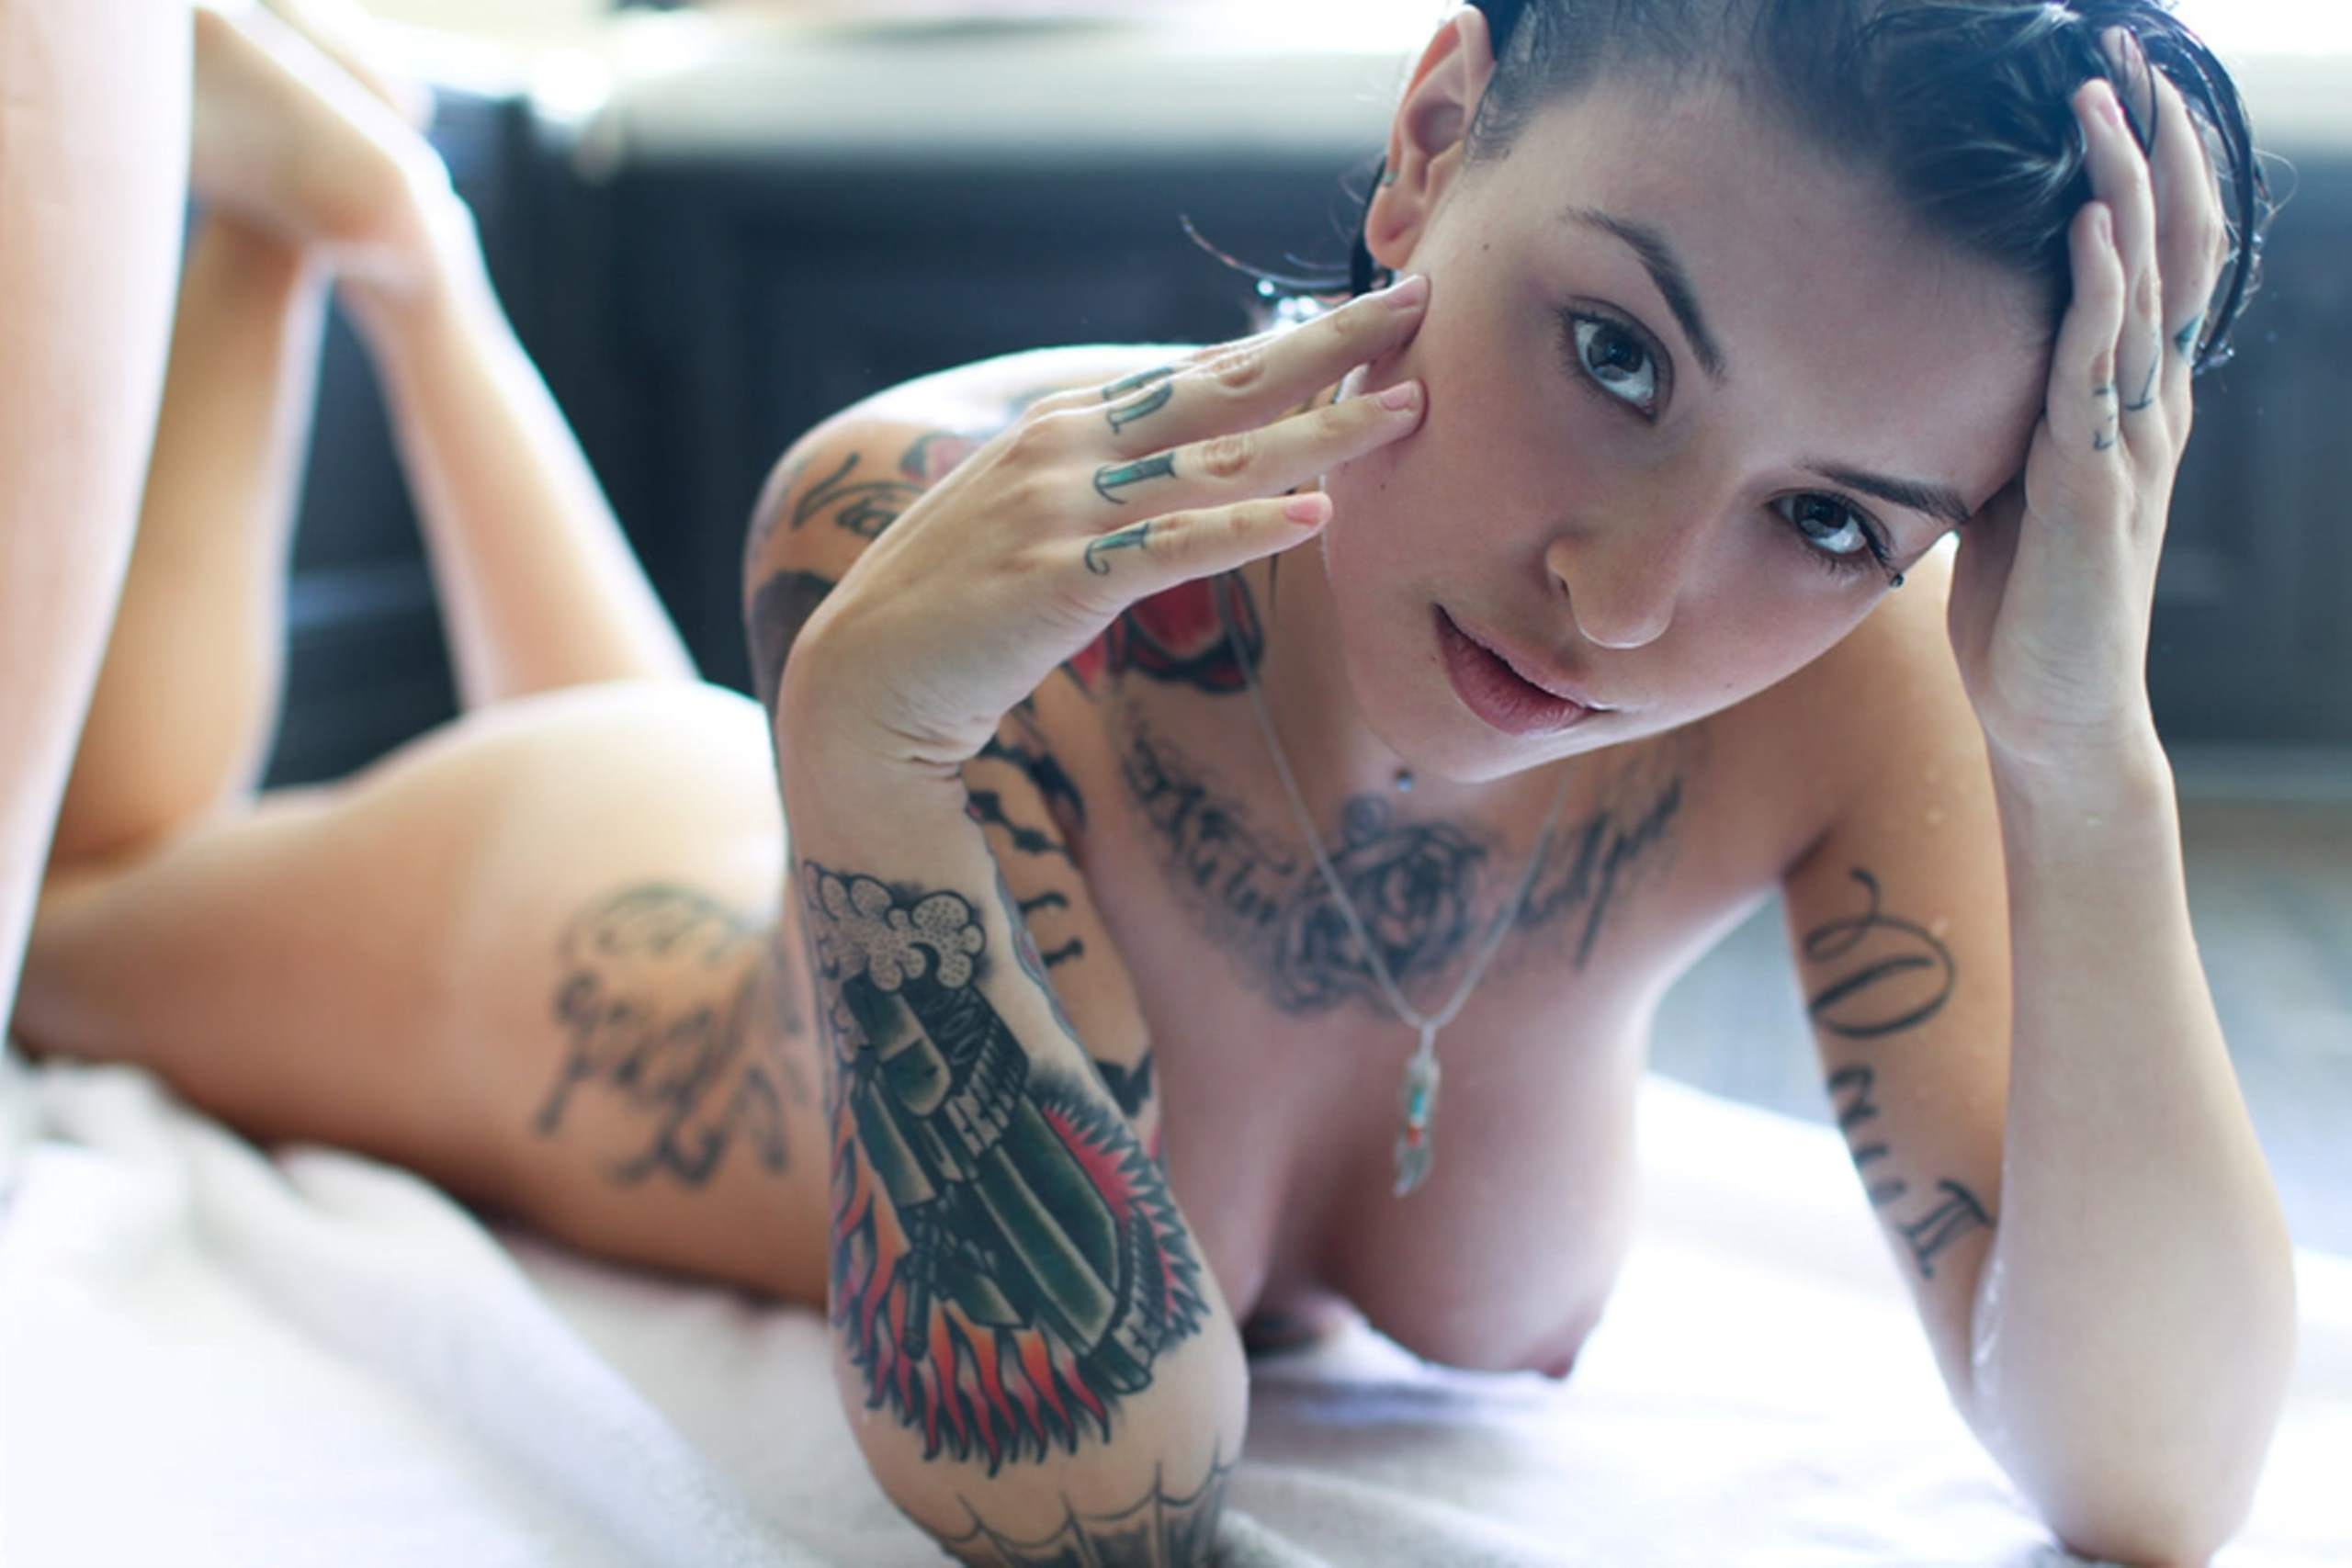 Download 2560x1707 brunette, boobs, girl, nude, tattoo ...